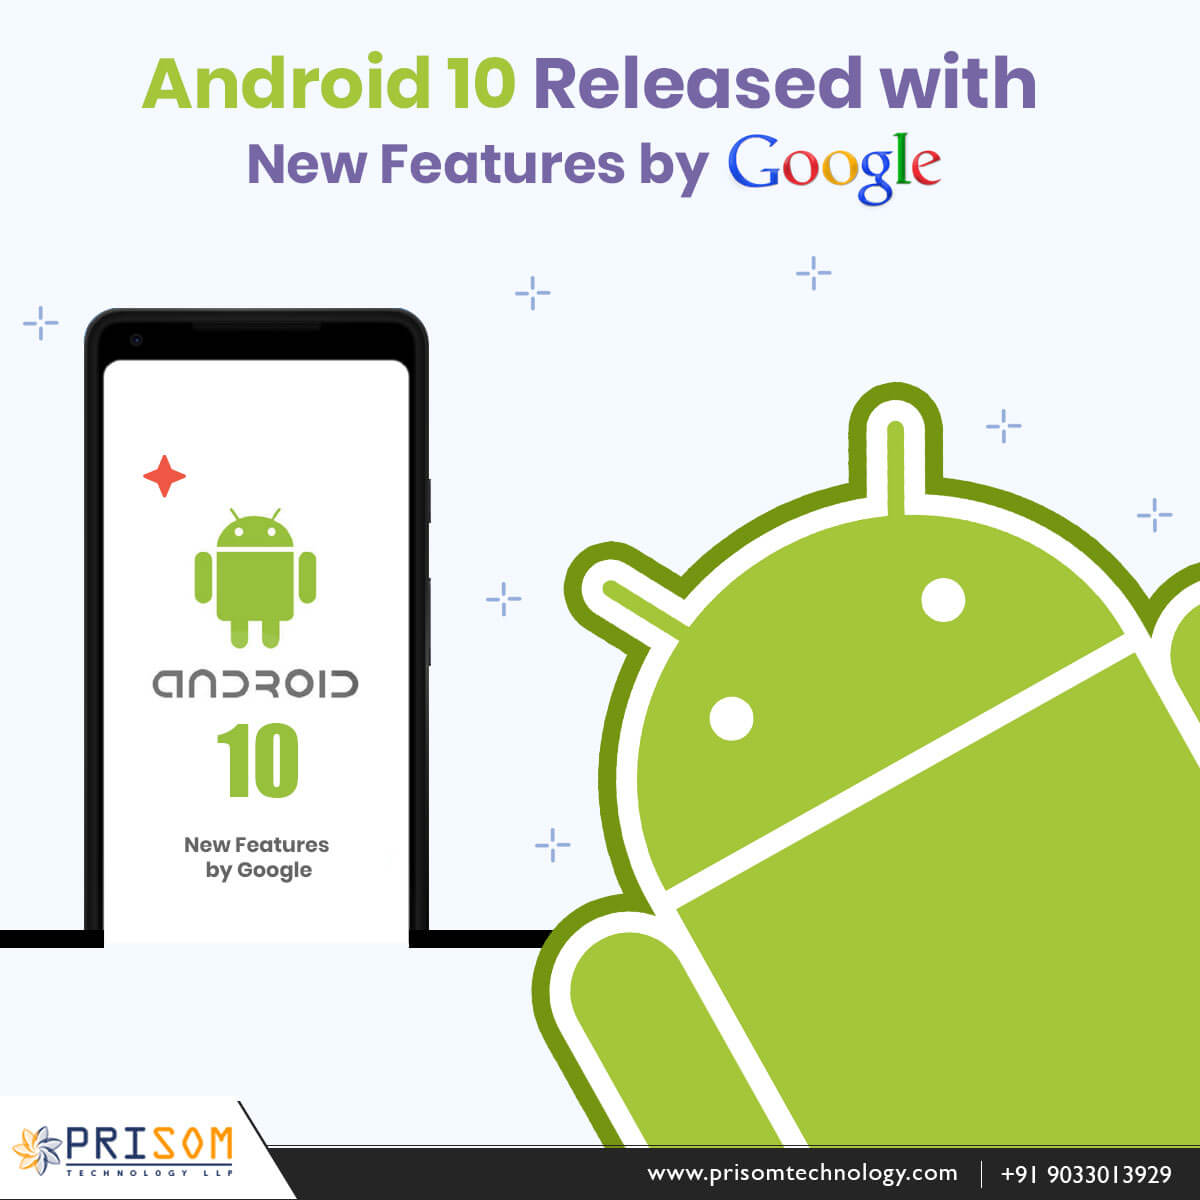 Android 10 Released with New Features by Google